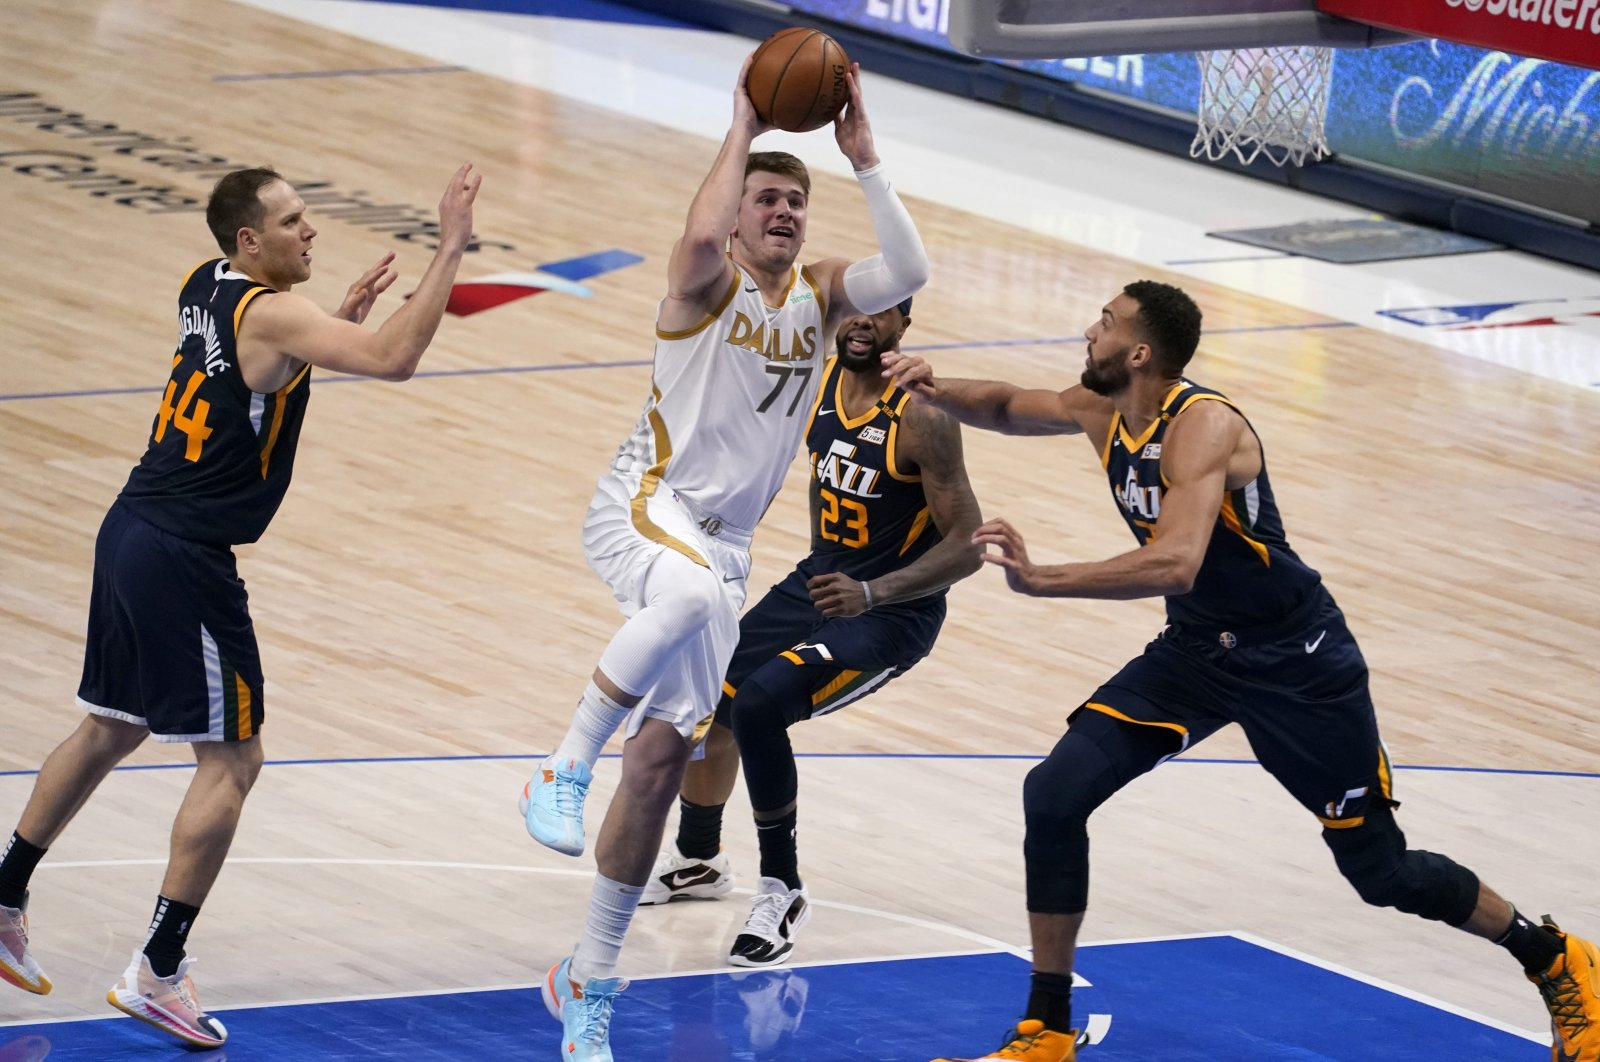 Dallas Mavericks guard Luka Doncic (C) leaps to the basket for a shot as Utah Jazz's Bojan Bogdanovic (L), Royce O'Neale and Rudy Gobert (R) defend in an NBA game in Dallas, U.S., April 5, 2021. (AP Photo/Tony Gutierrez)